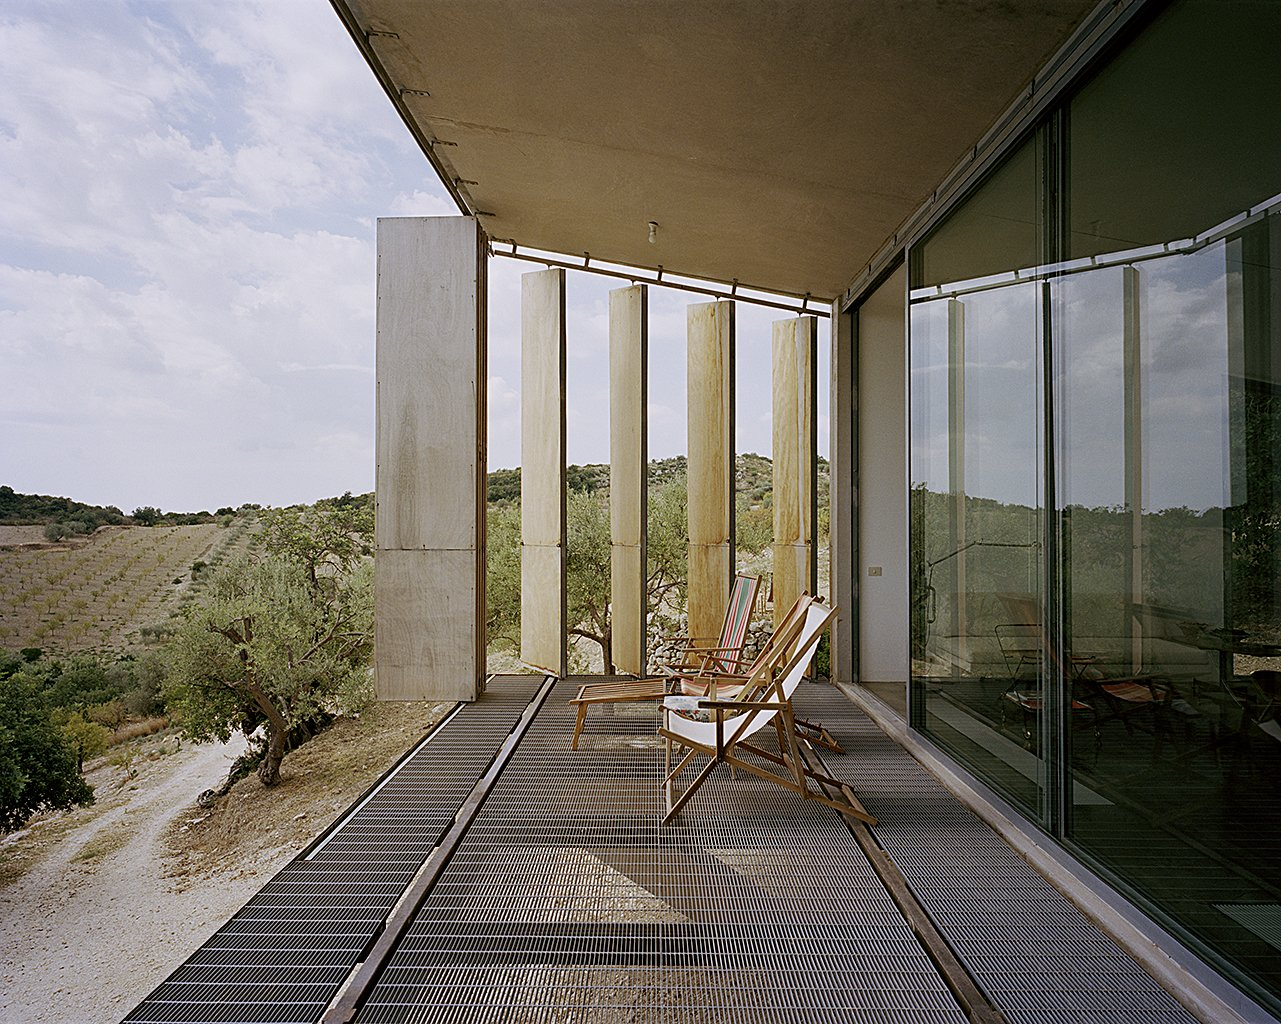 Side Yard and Metal Patio, Porch, Deck  Sea View Villa from Stay in a Minimalist Villa in the Sicilian Countryside, Complete With Sea Views